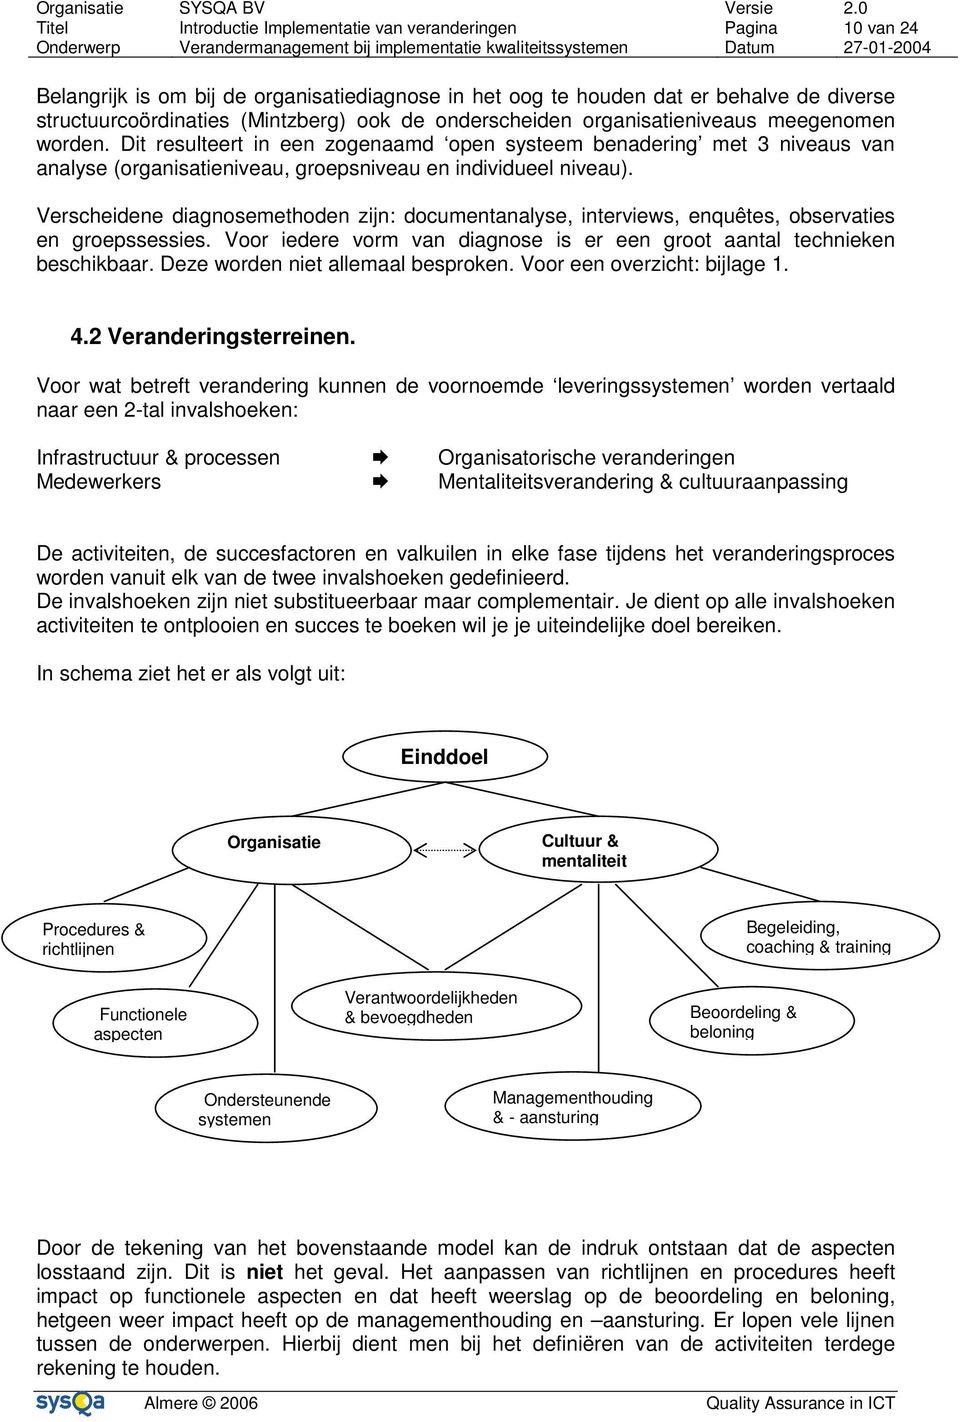 Verscheidene diagnosemethoden zijn: documentanalyse, interviews, enquêtes, observaties en groepssessies. Voor iedere vorm van diagnose is er een groot aantal technieken beschikbaar.